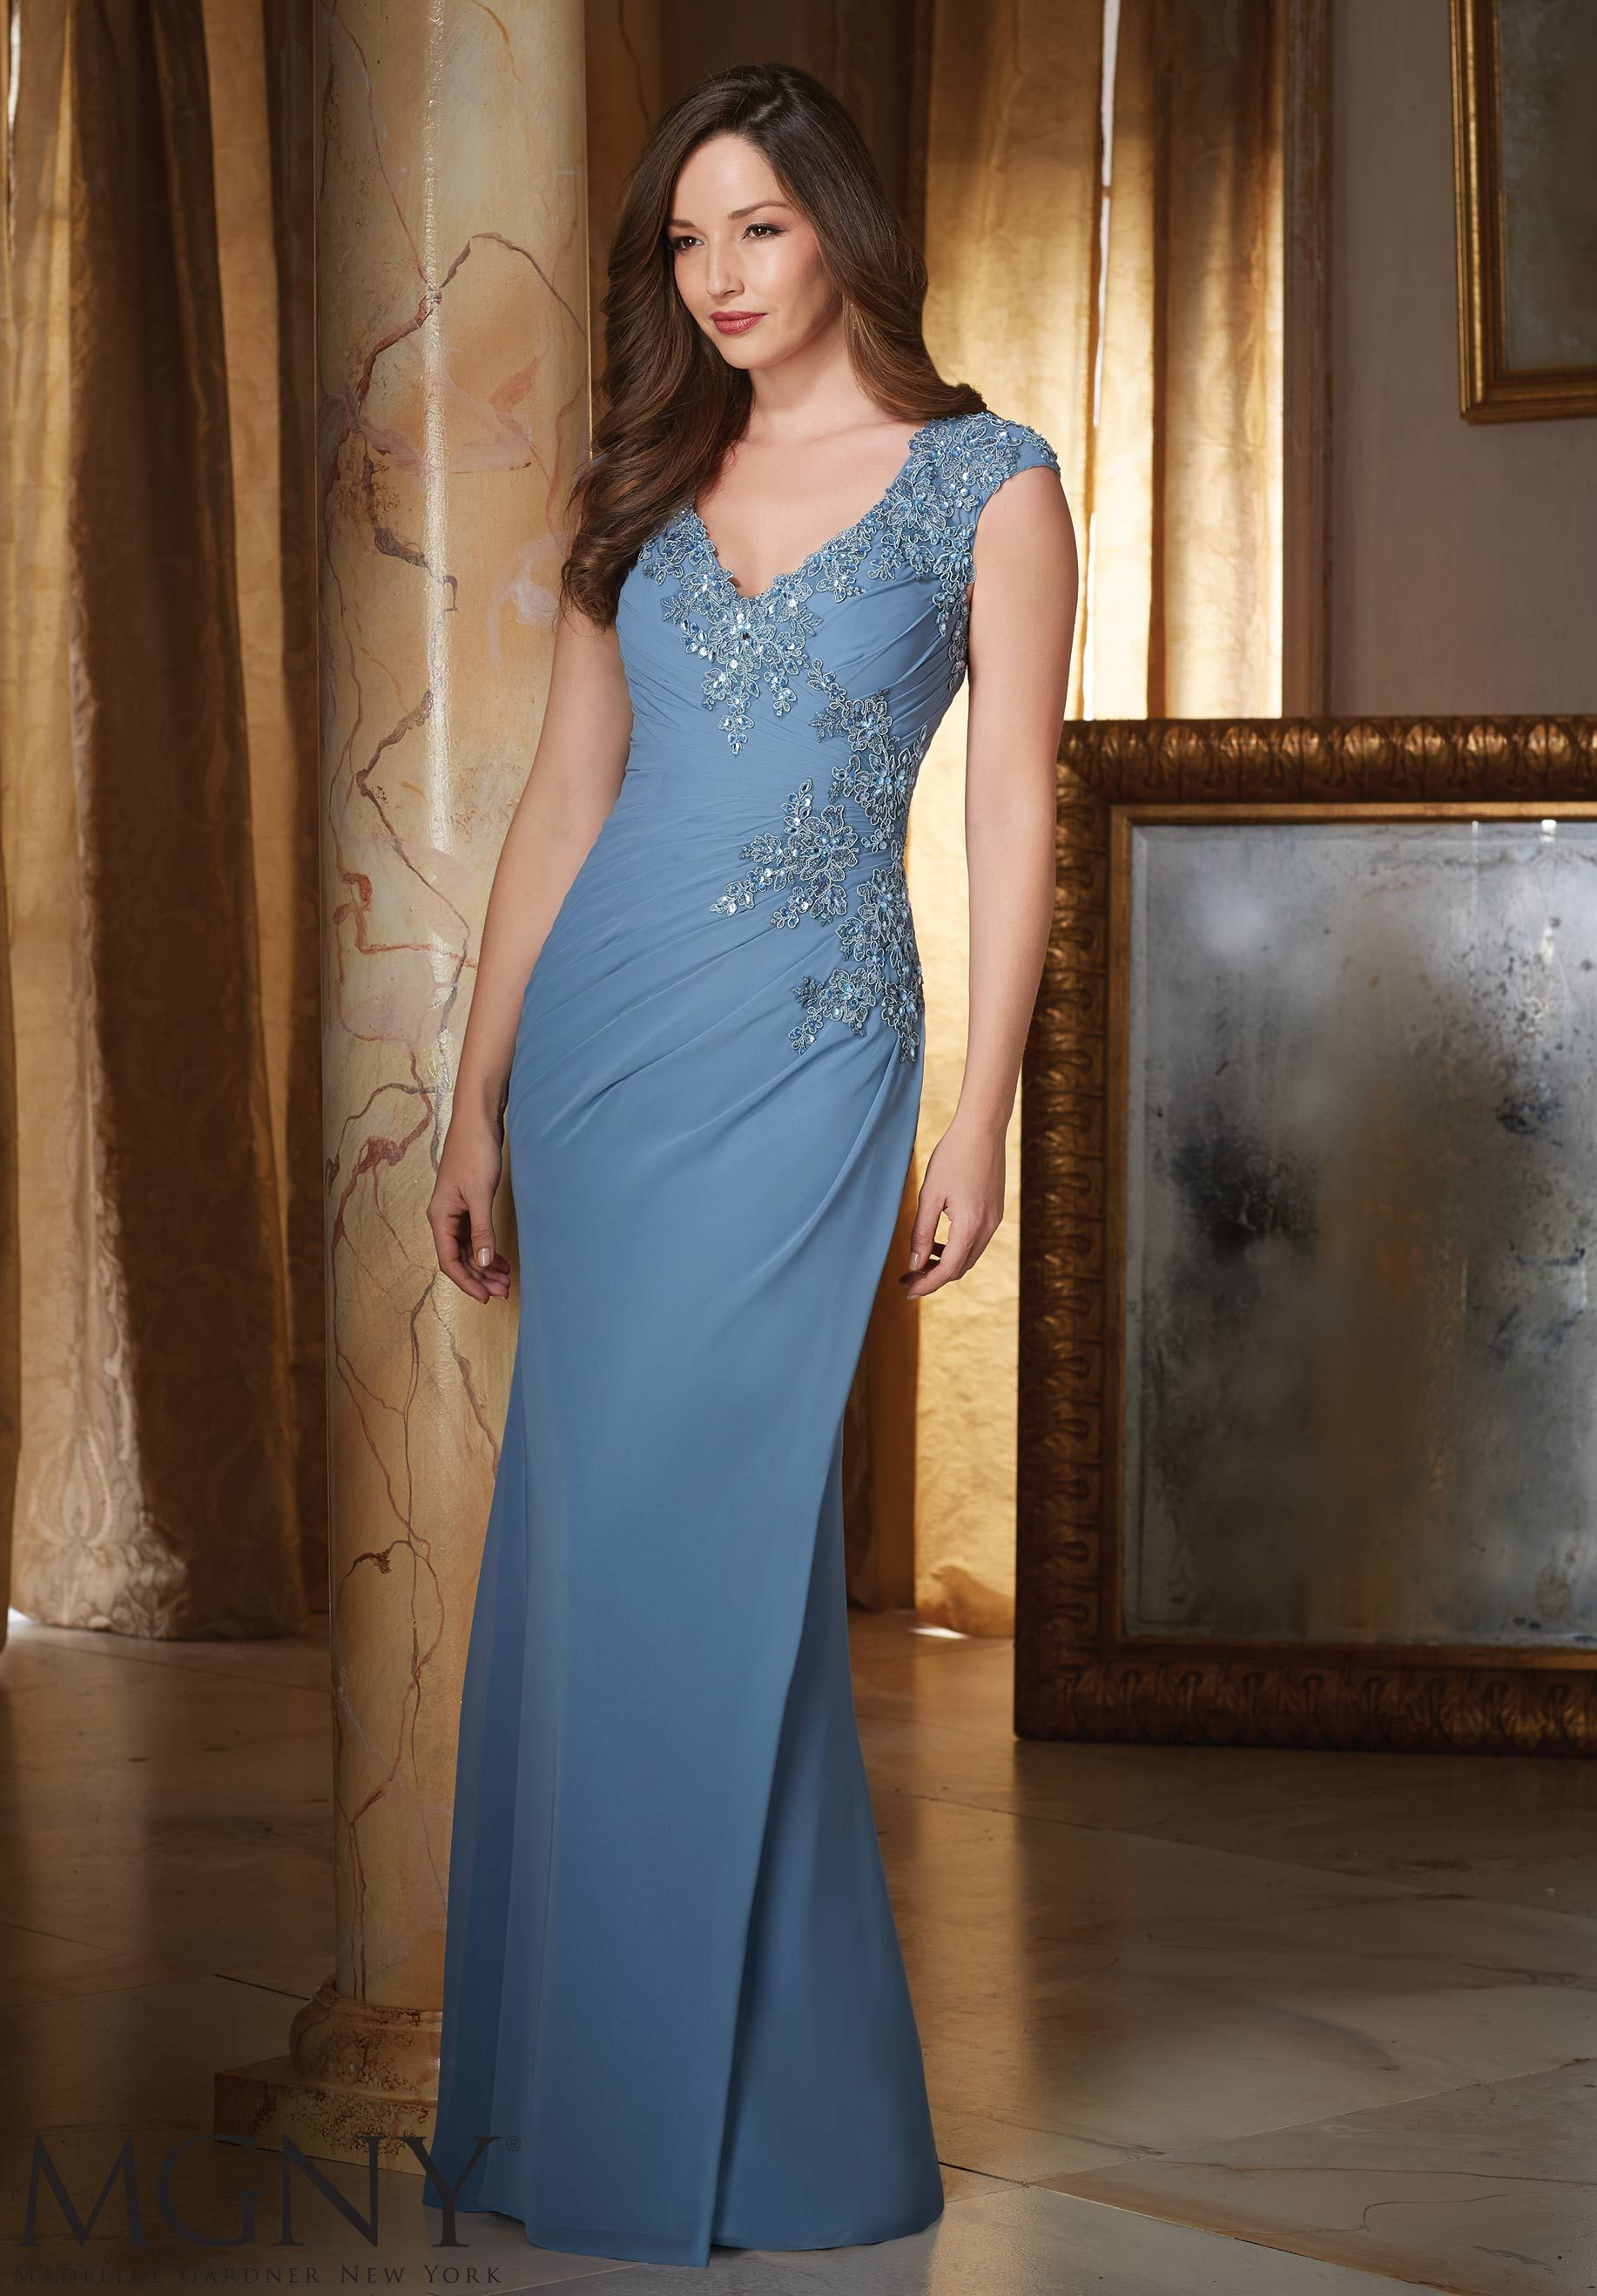 Beaded Lace Appliques on Chiffon Mother of the Bride Dress Designed ...